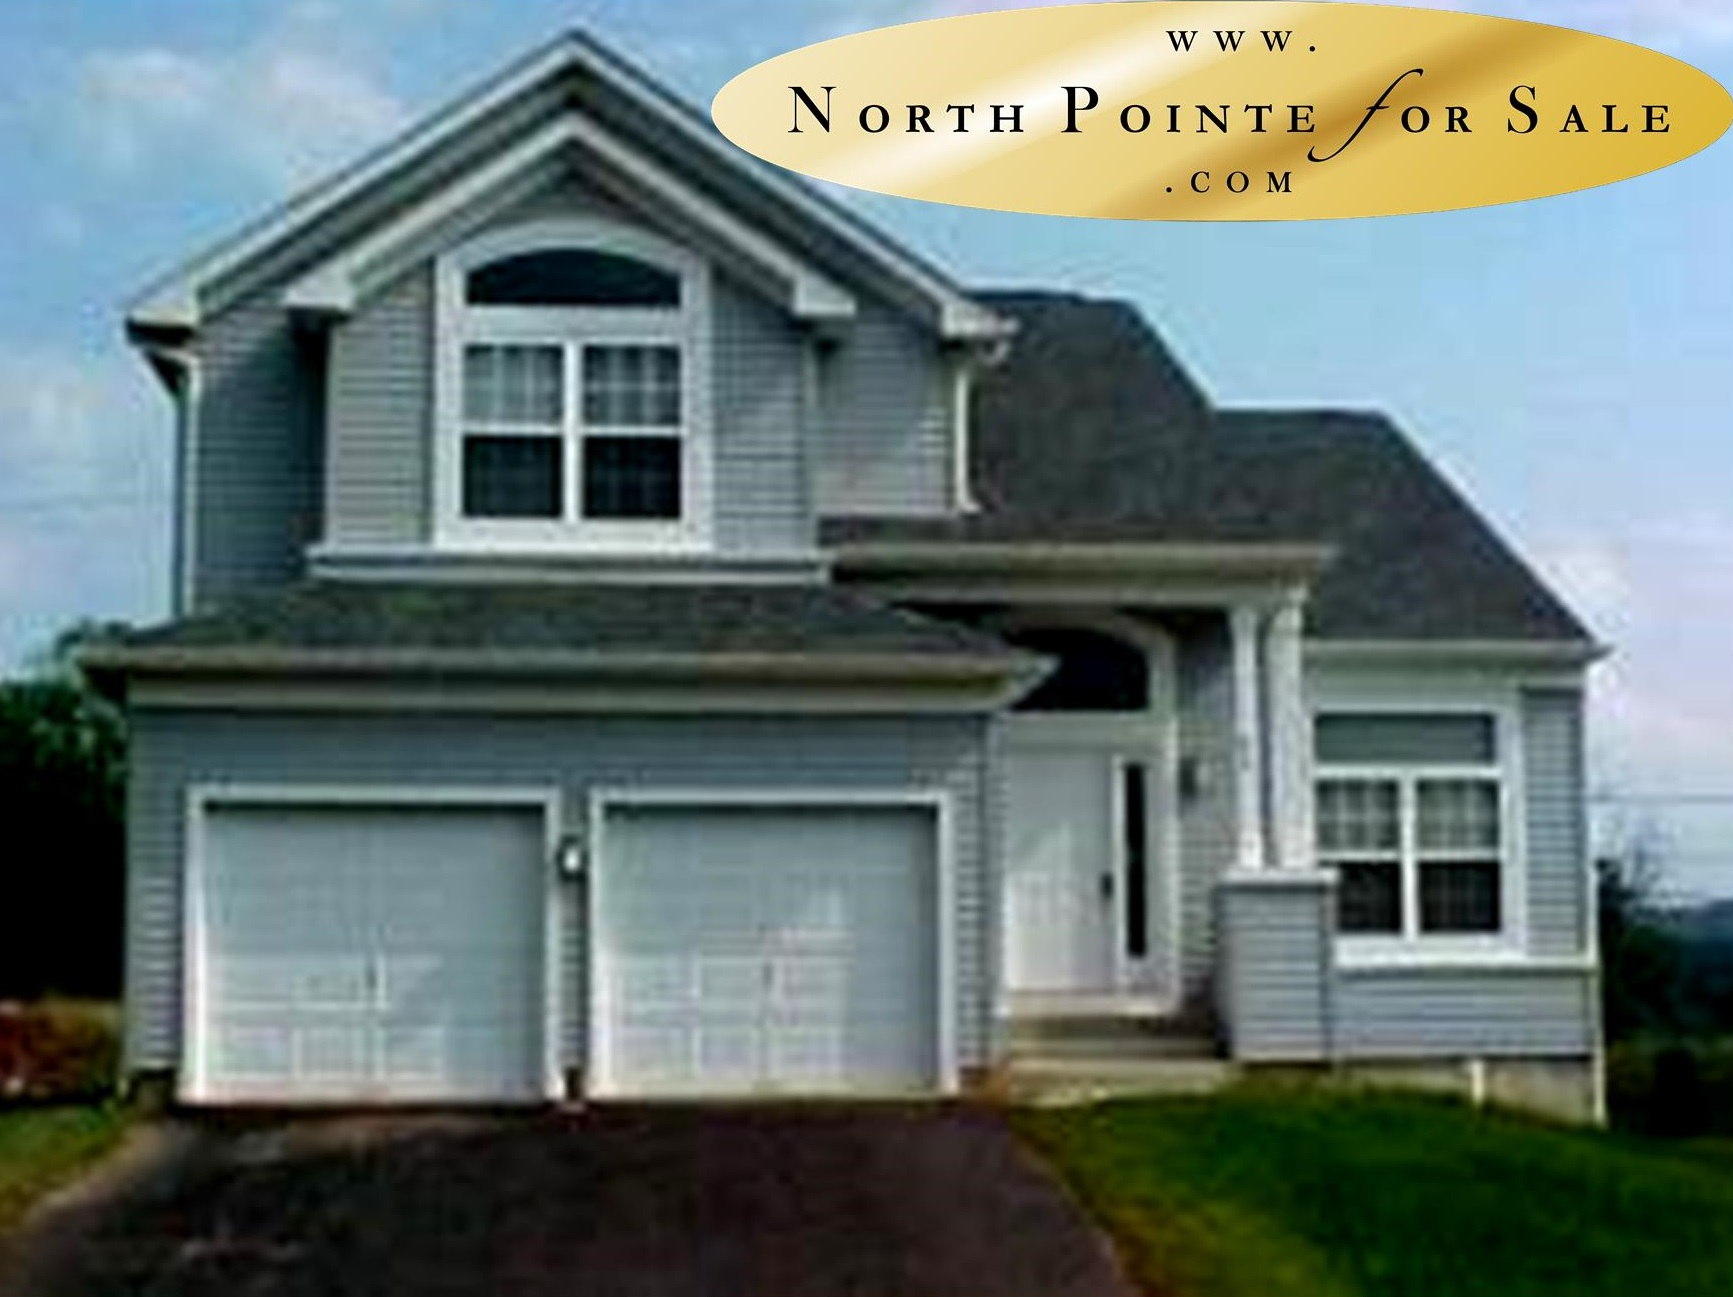 North Pointe Homes In New Hope Pa Realtor